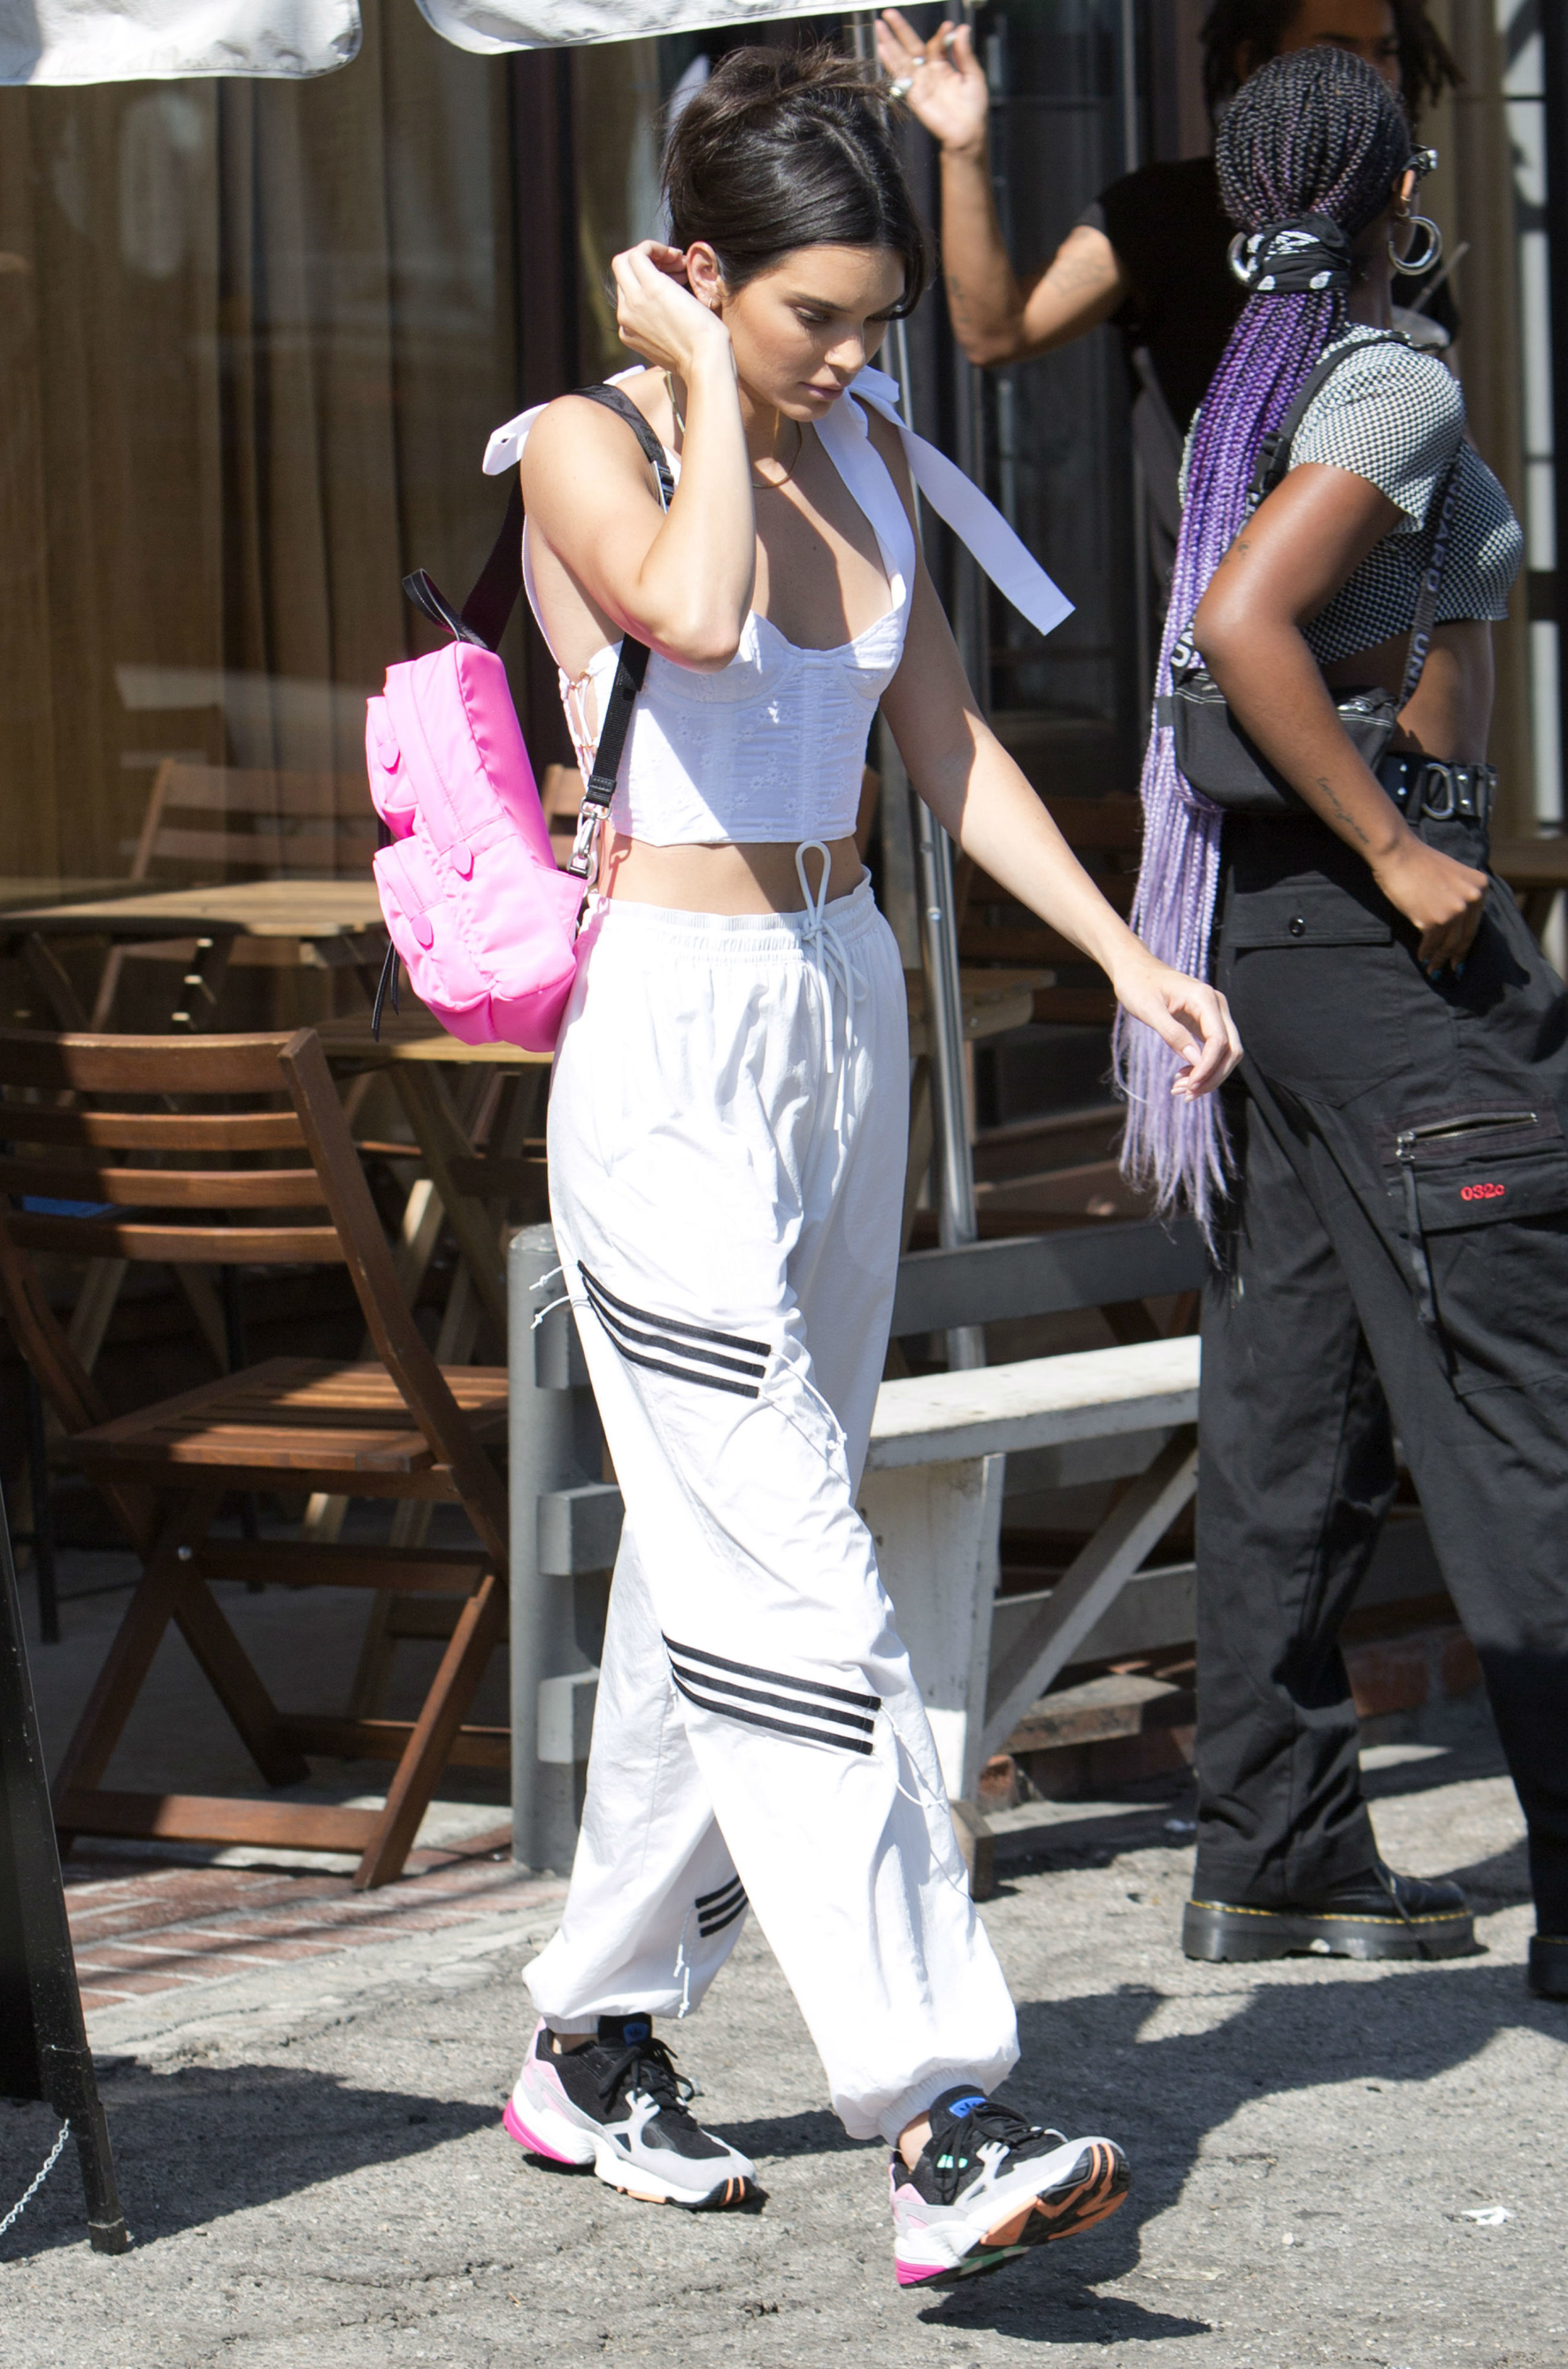 Kendall Jenner leaves a restaurant in the West Hollywood area of Los Angeles, Calif., on July 30, 2018.